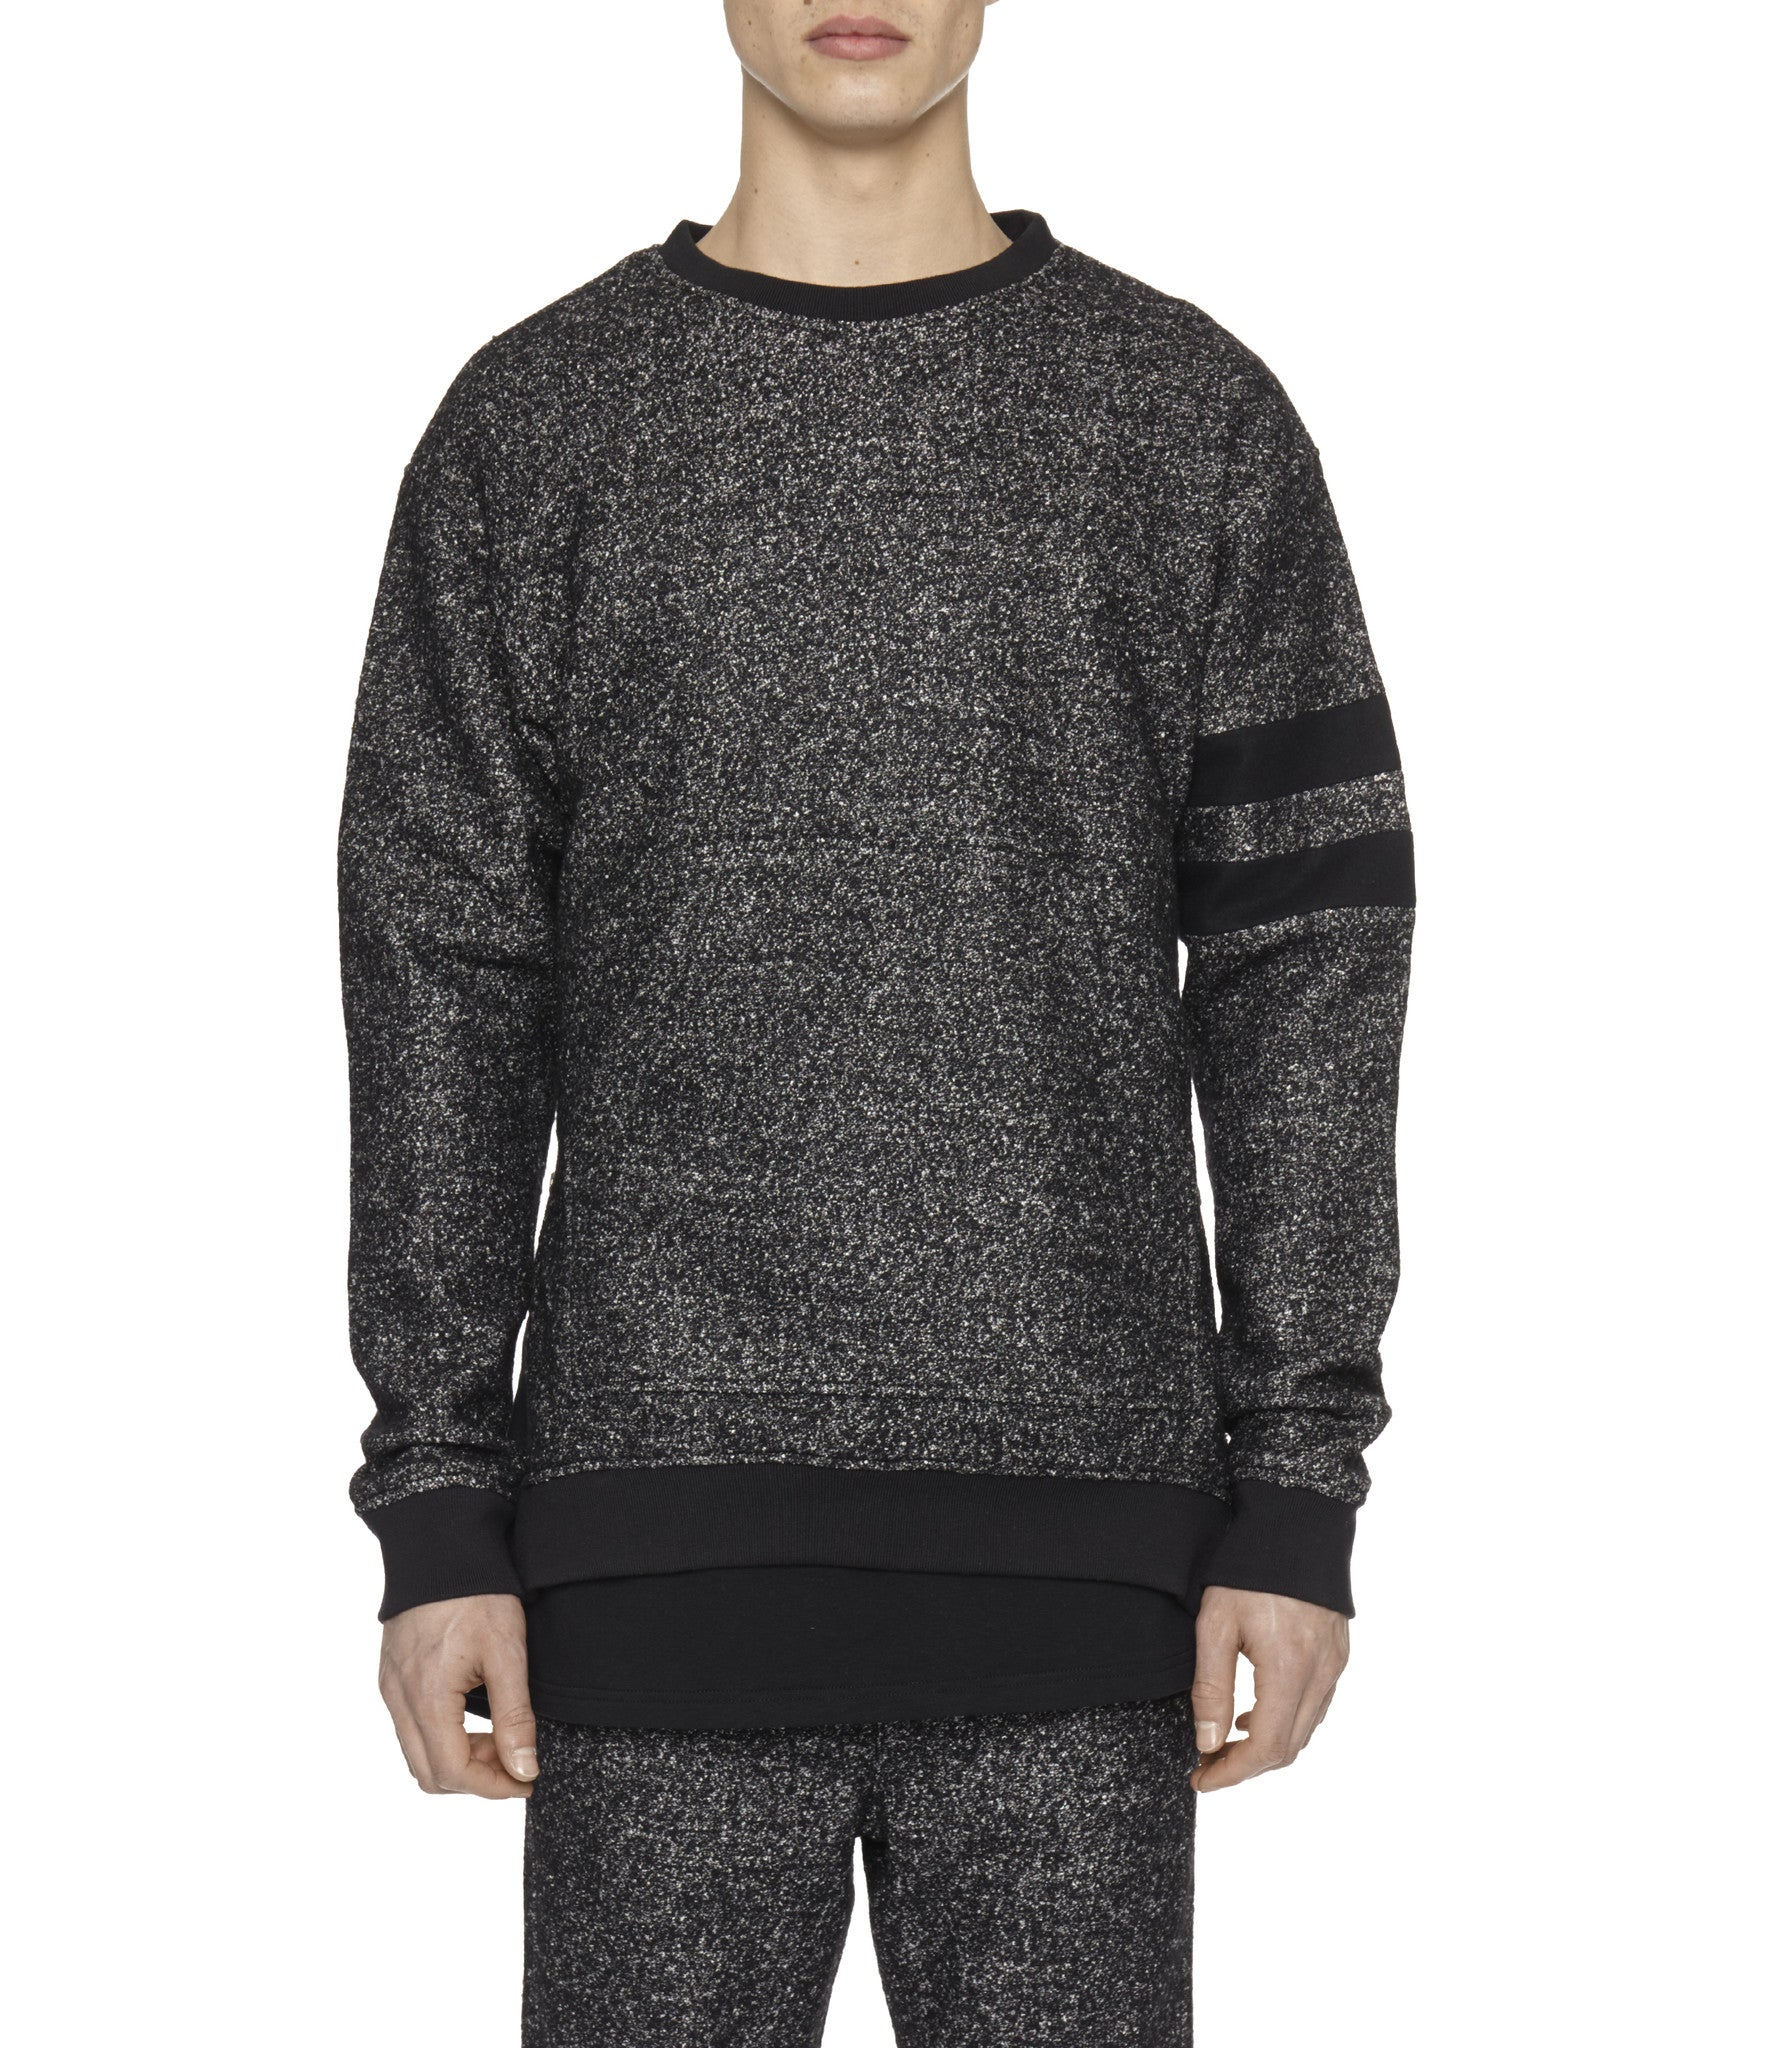 SW301 Oversized Mélange Wool Sweatshirt - Black - underated london - underatedco - 1